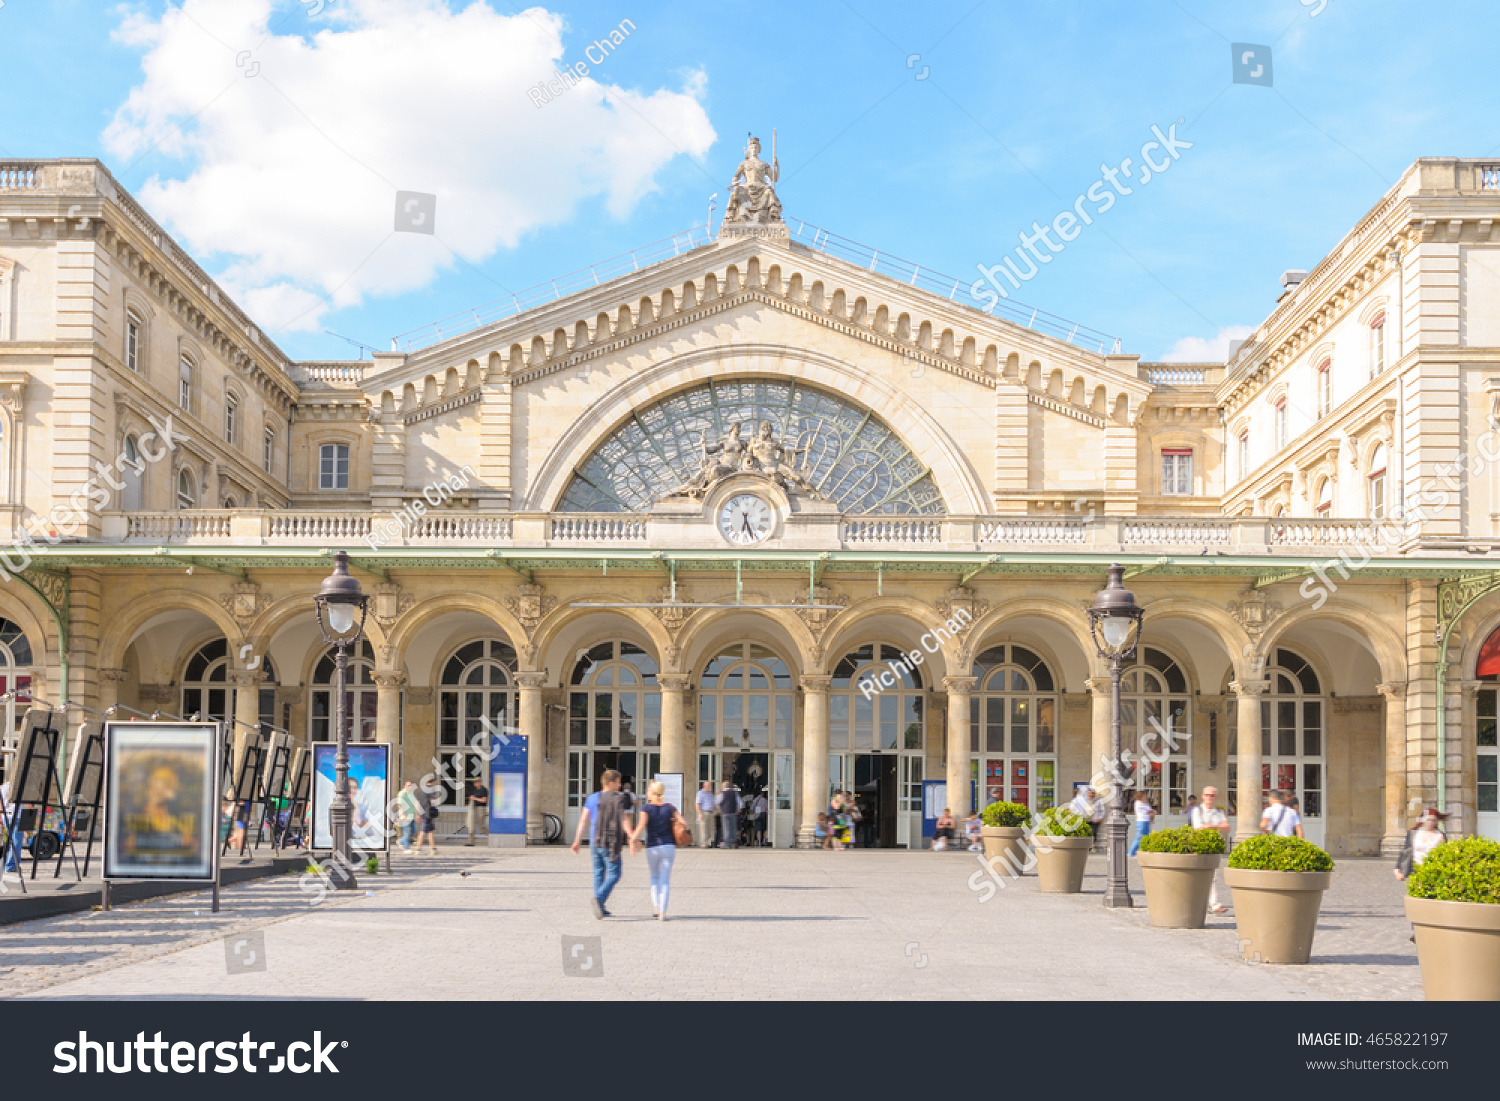 Gare De Paris Gare De Paris Est Gare De L Est Stock Photo Edit Now 465822197